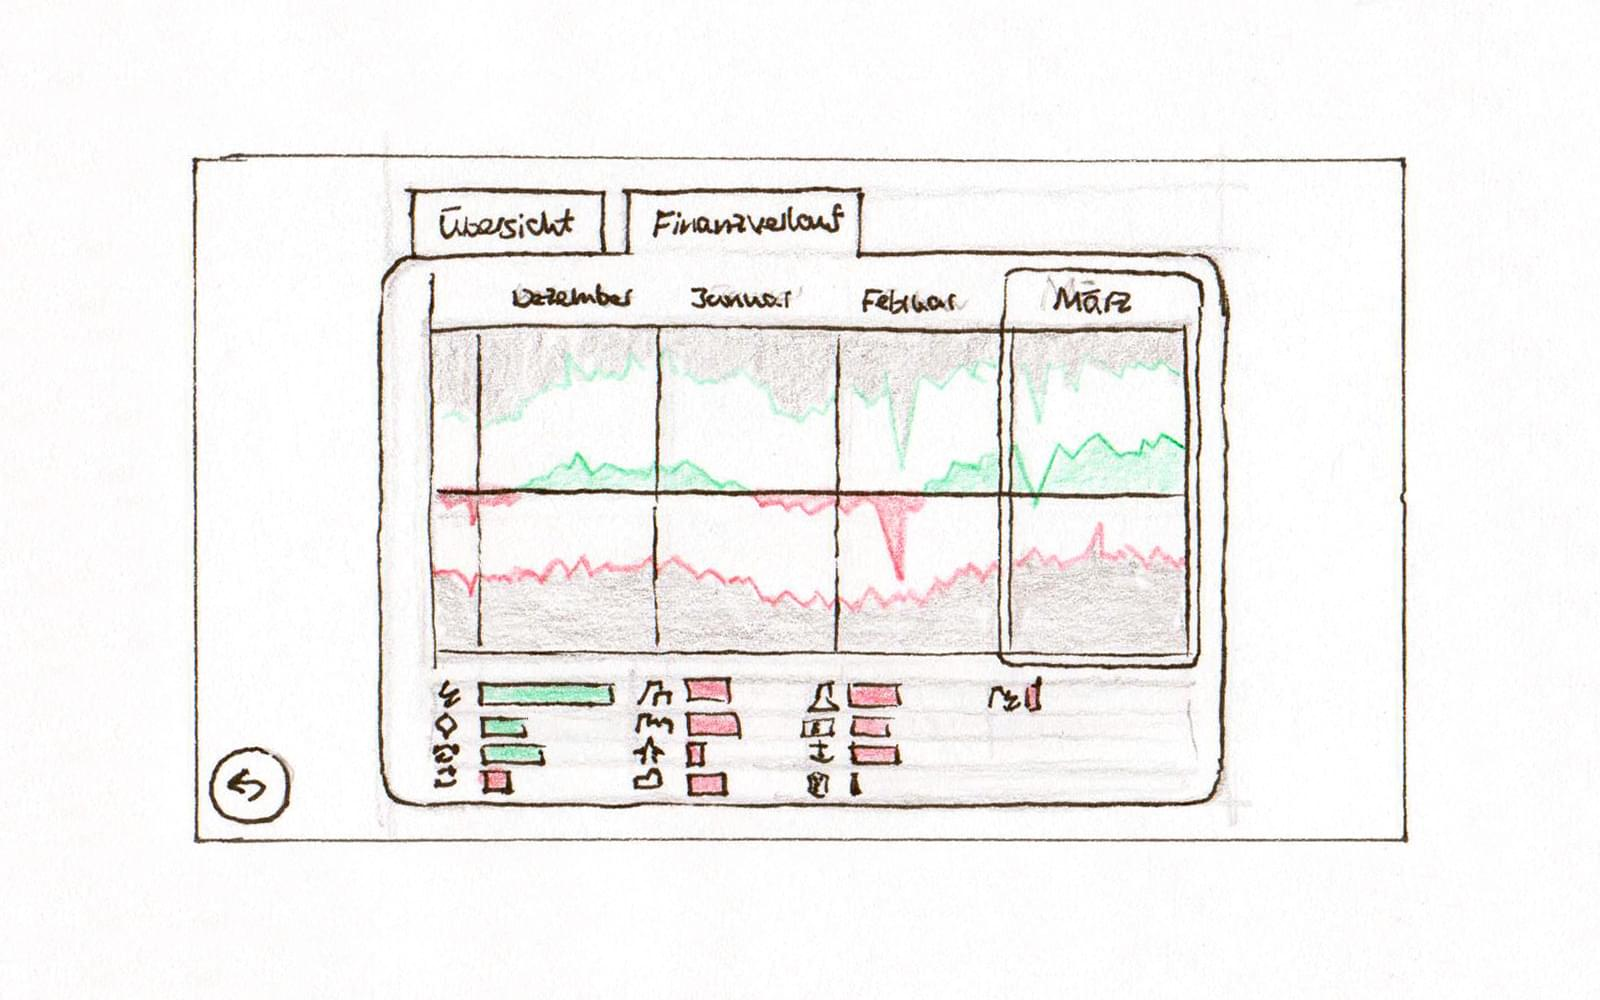 Wireframe sketch for mobile - History of finances